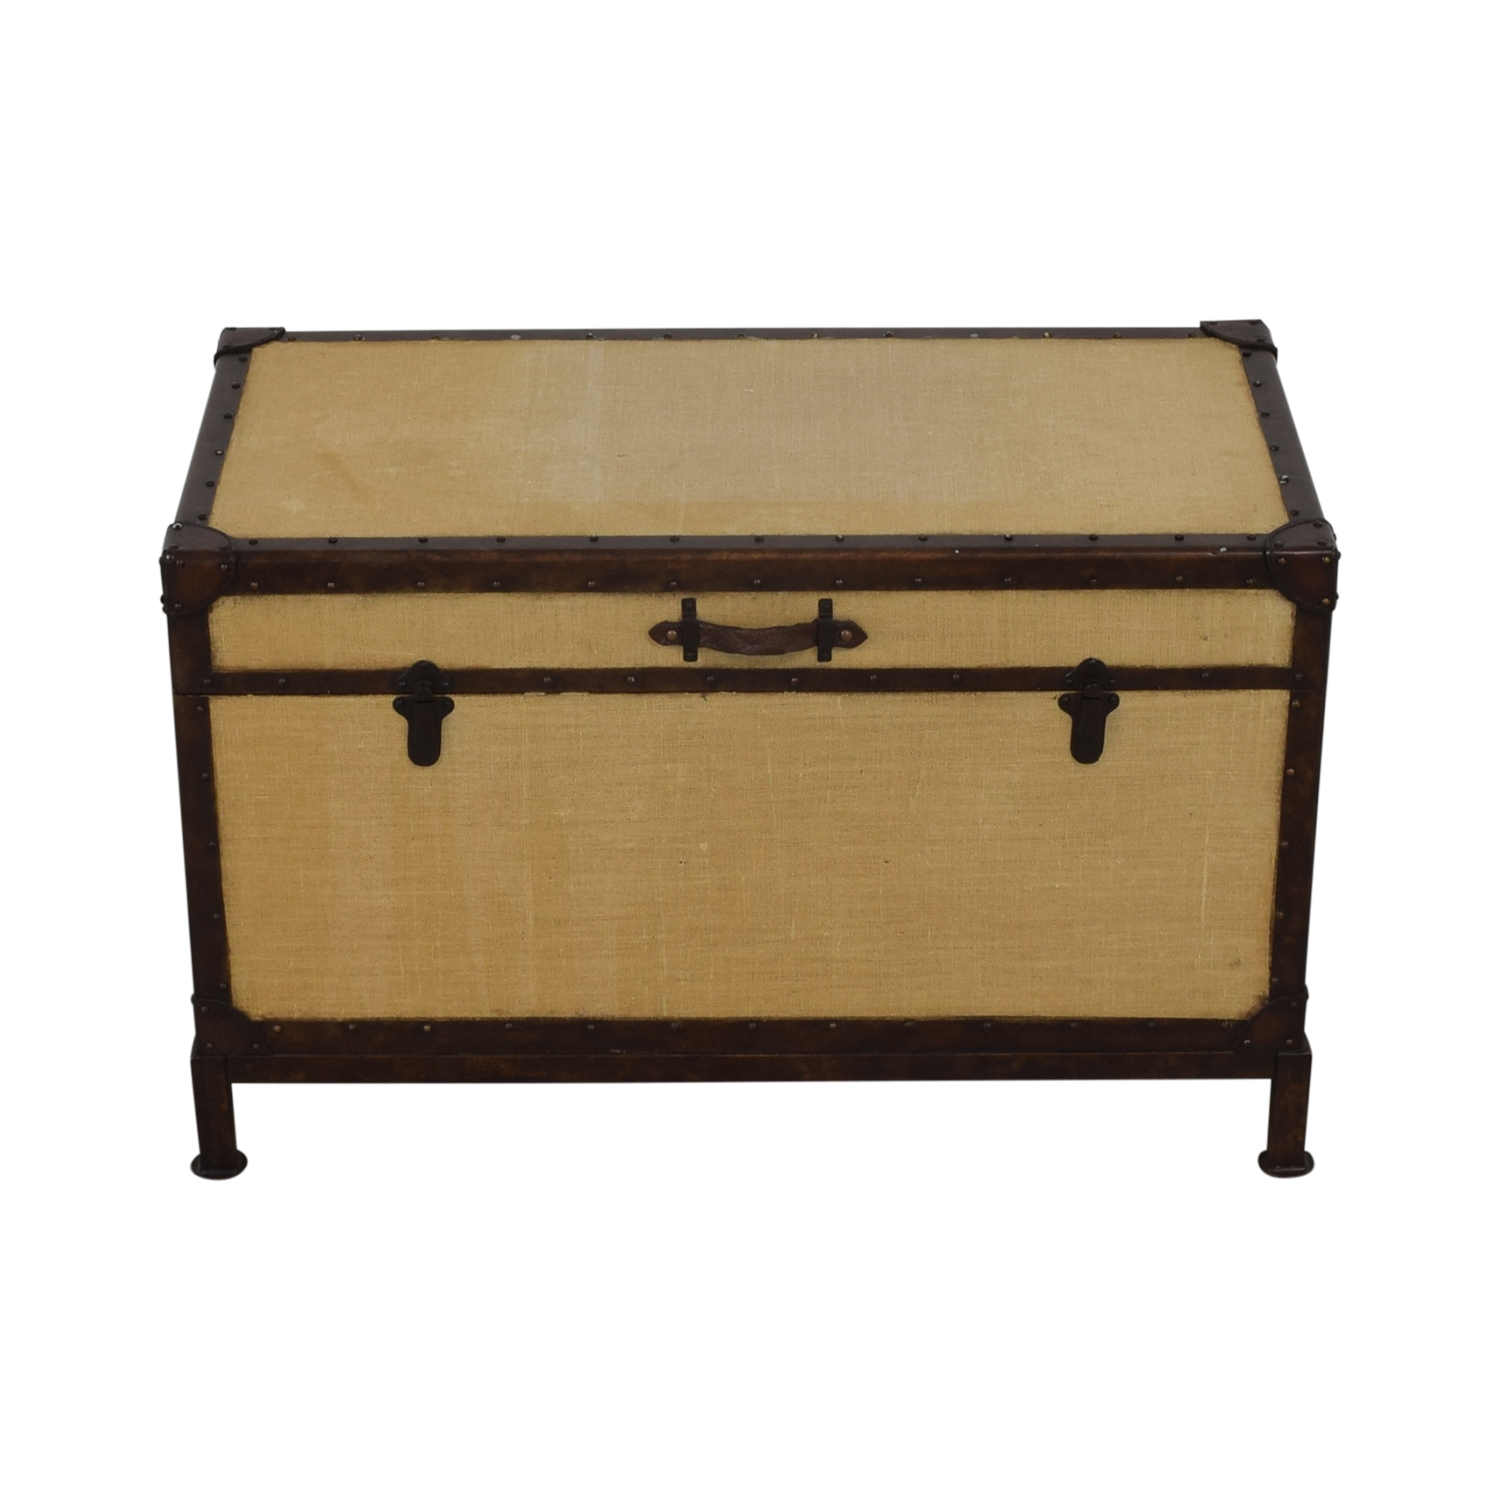 shop Pottery Barn Redford End of Bed Trunk Pottery Barn Trunks